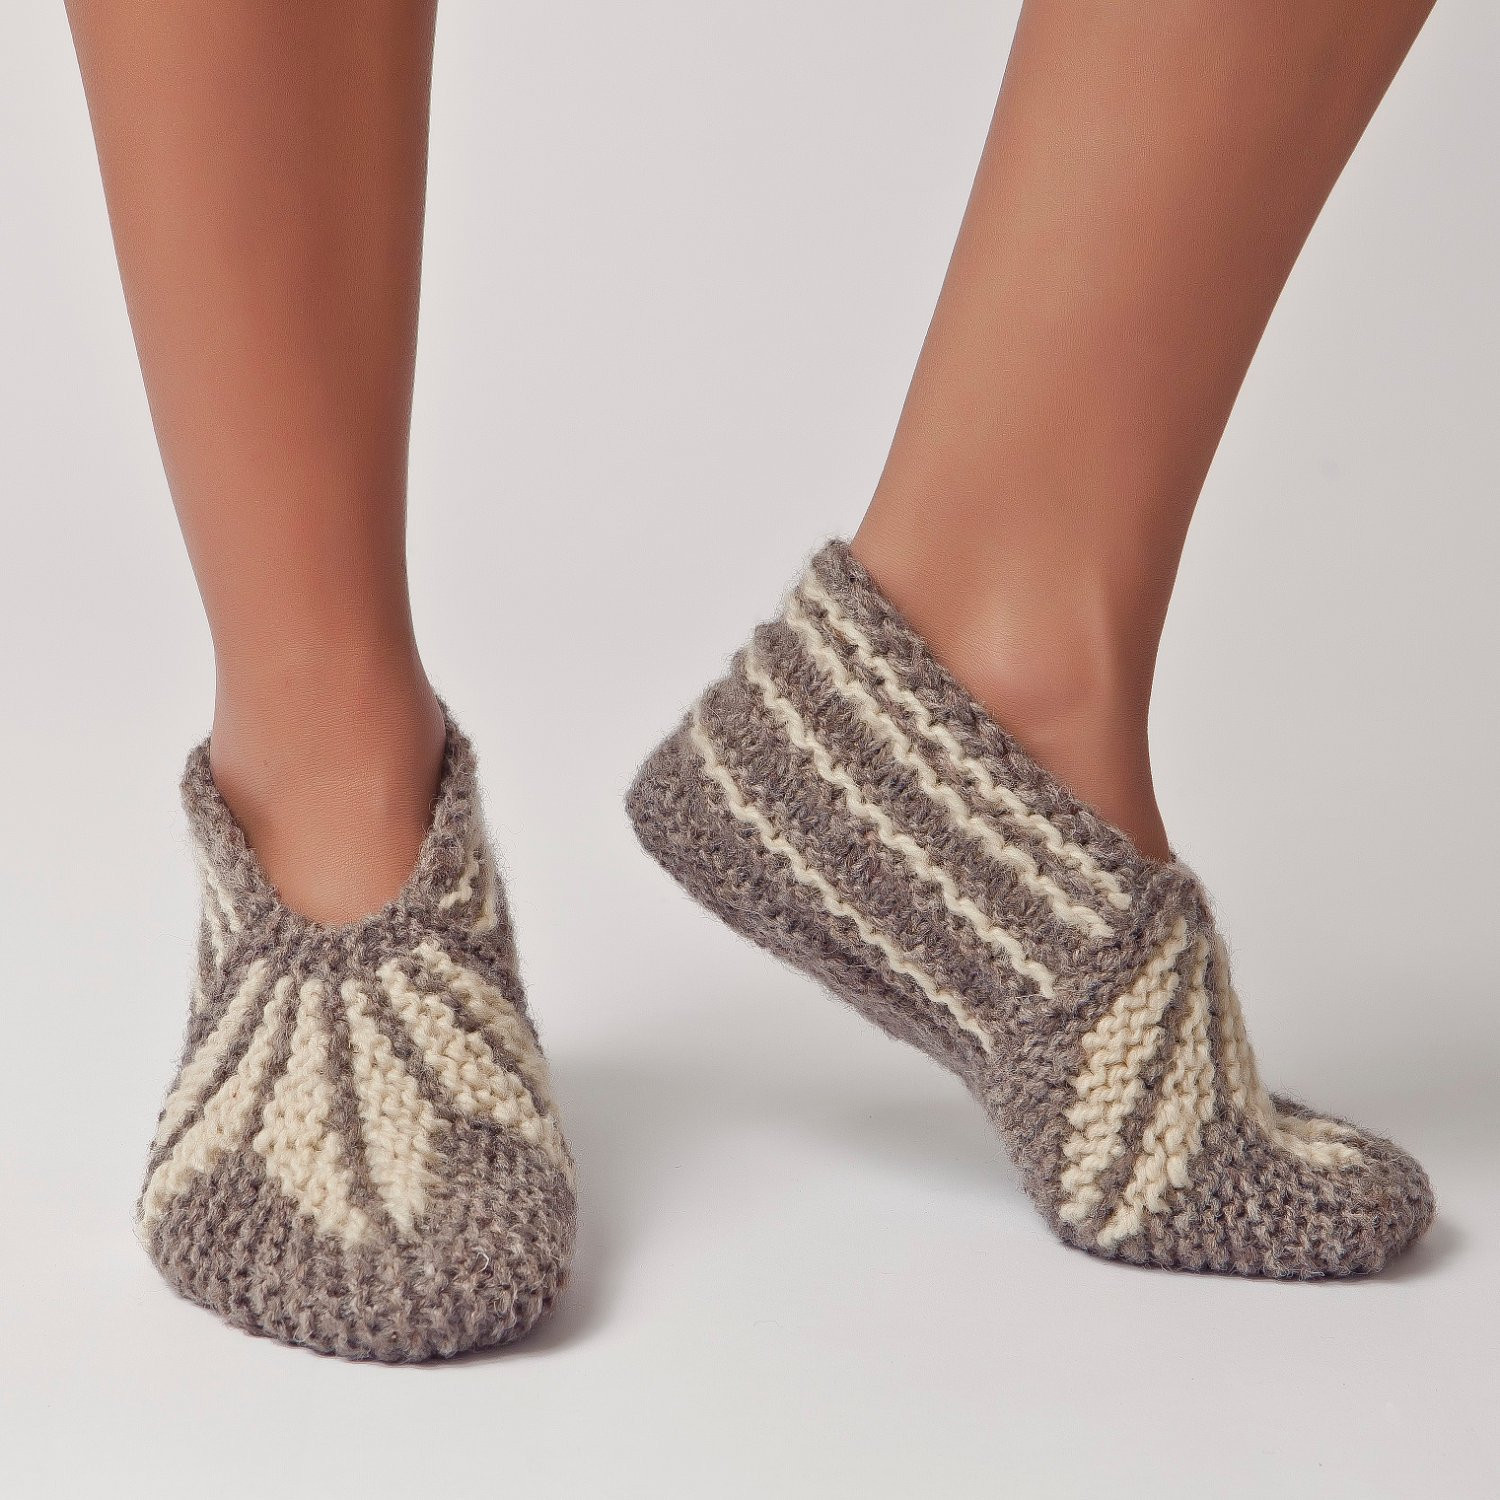 Knitted Slippers Unique Wool Slippers Handknit Wool socks Warm soft Knitted socks Of New 42 Photos Knitted Slippers